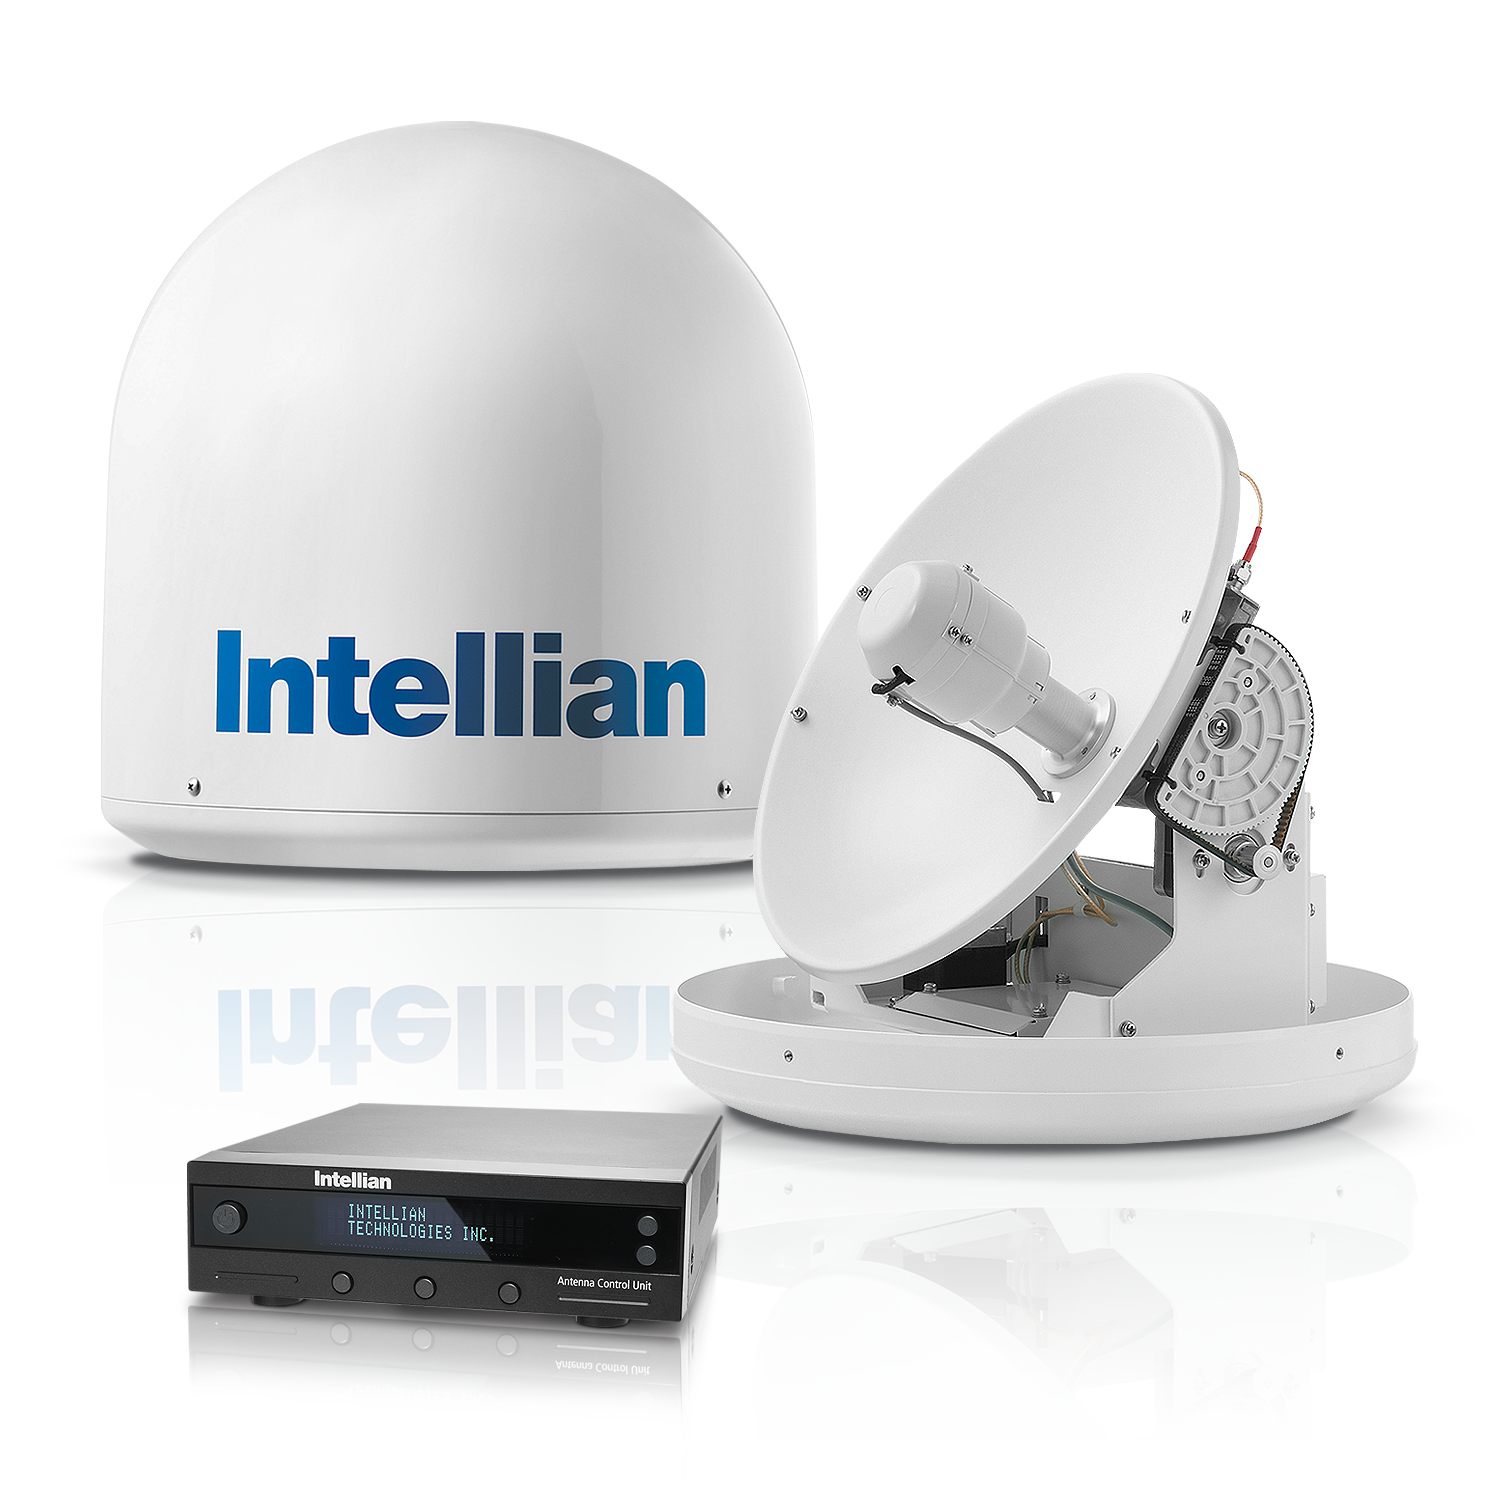 Intellian B2 206s Price I2 Hd Satellite Television System With 130 Wiring Diagram Us Dish